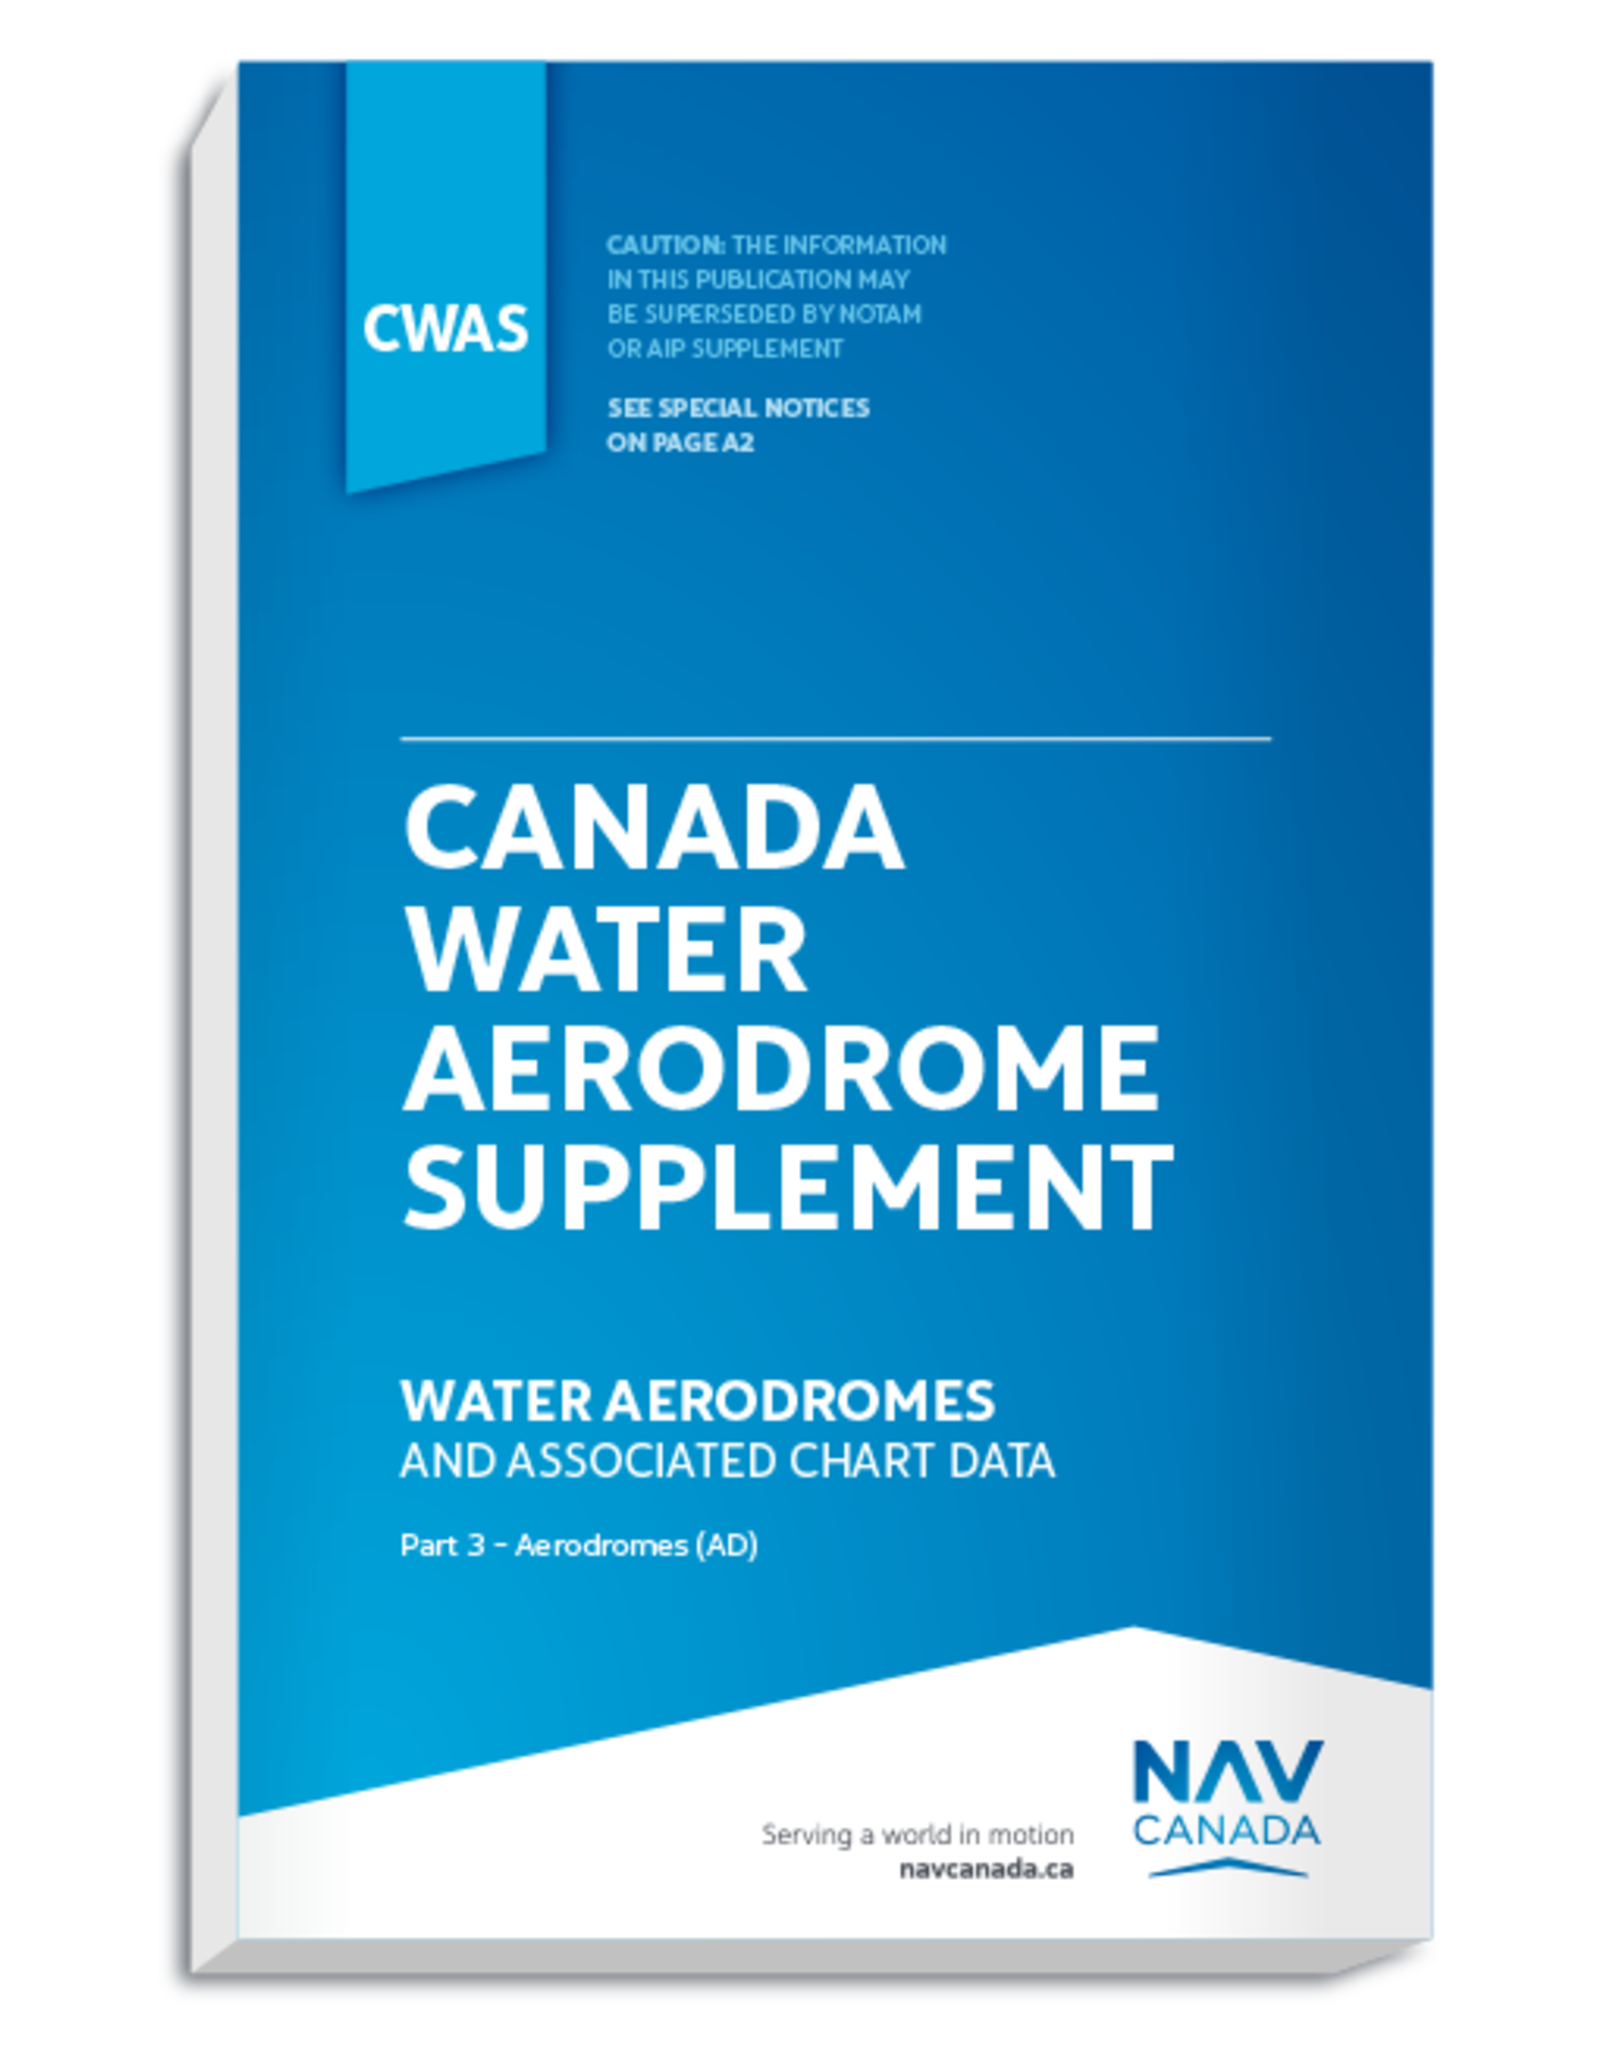 Canada Water Supplement - Mar 26, 2020 to Apr 22, 2021